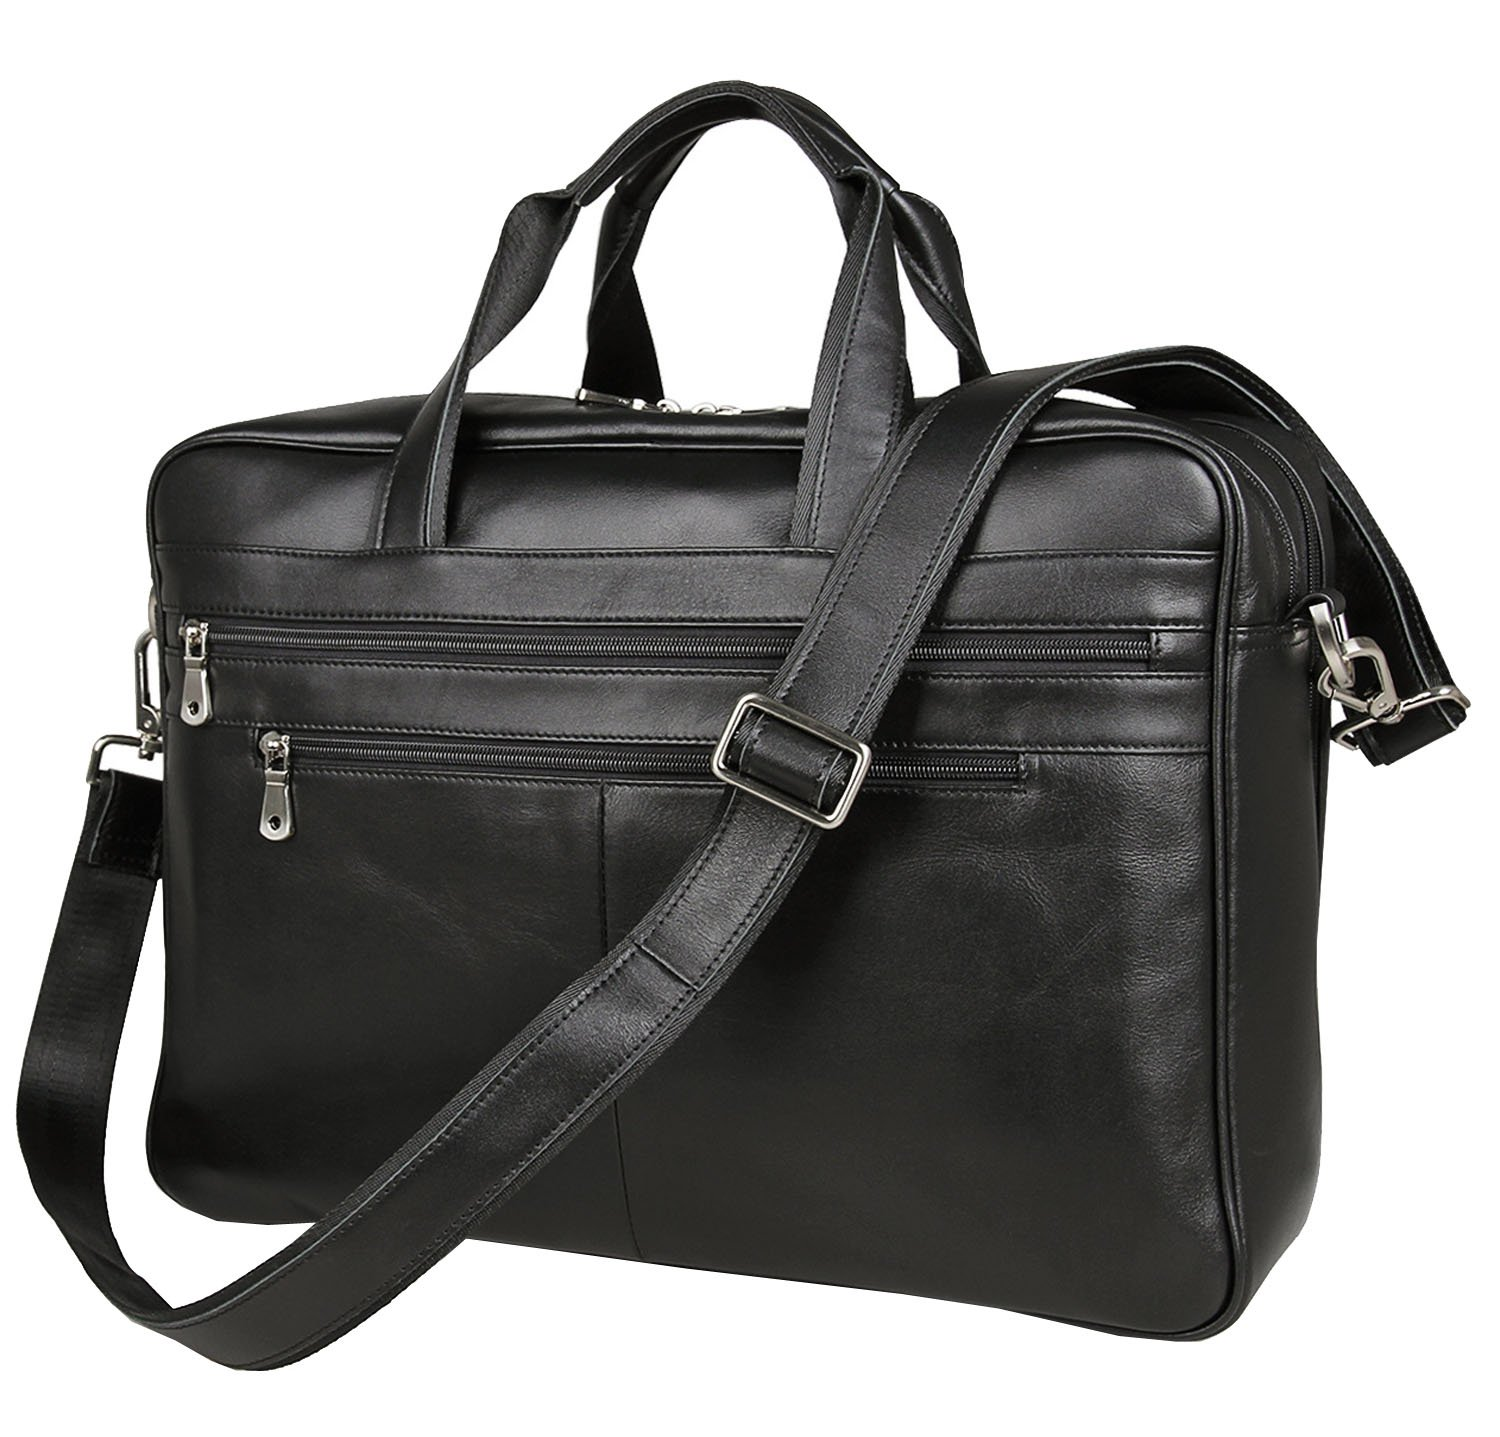 17-inch Leather Laptop Bag, Berchirly Large Lawyer Brifecase Man Computer File Bag Business Totes Black